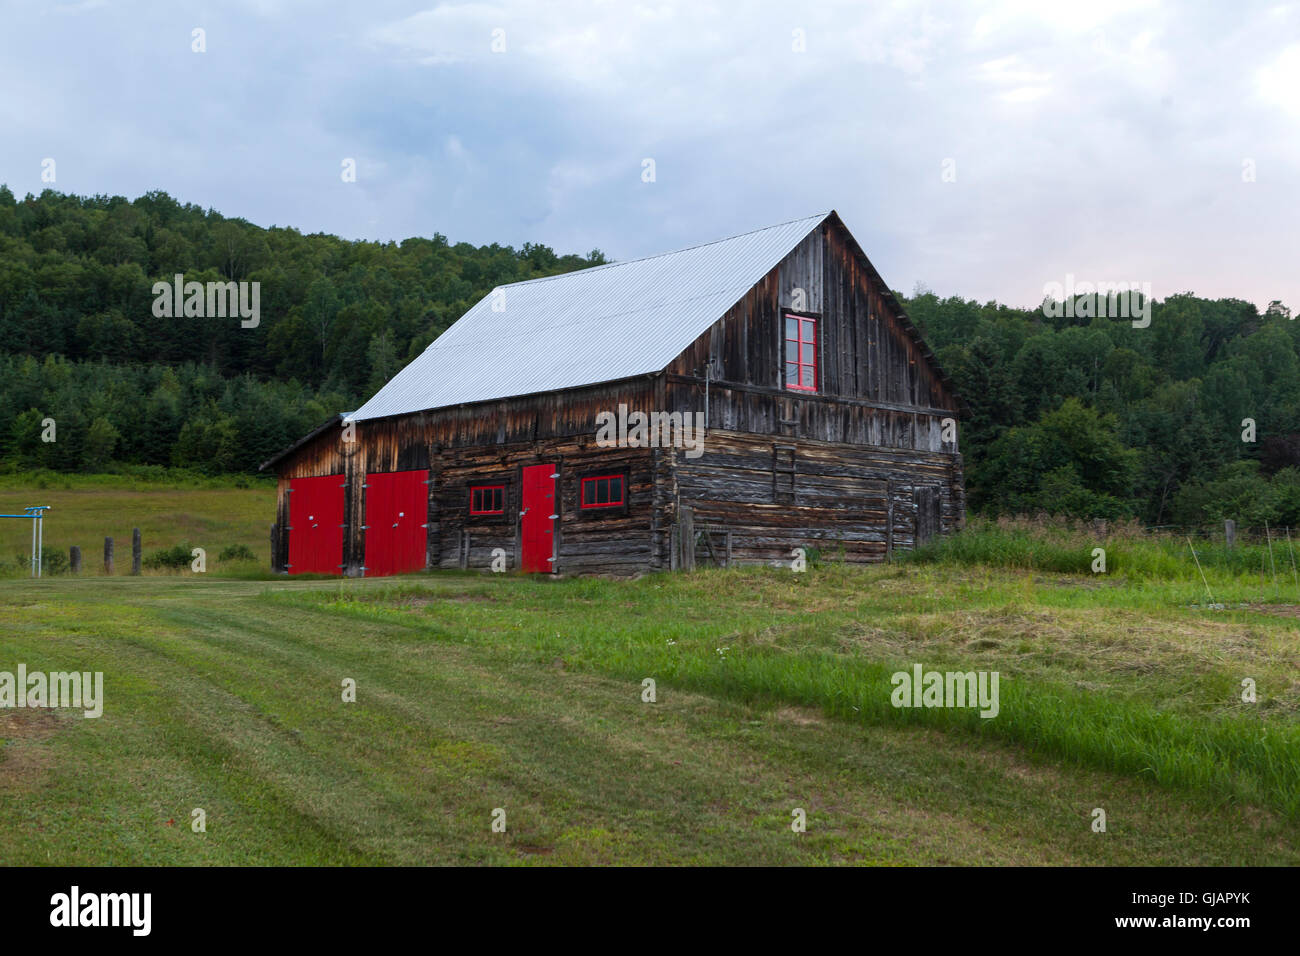 Barn with red doors and windows in Quebec - Stock Image